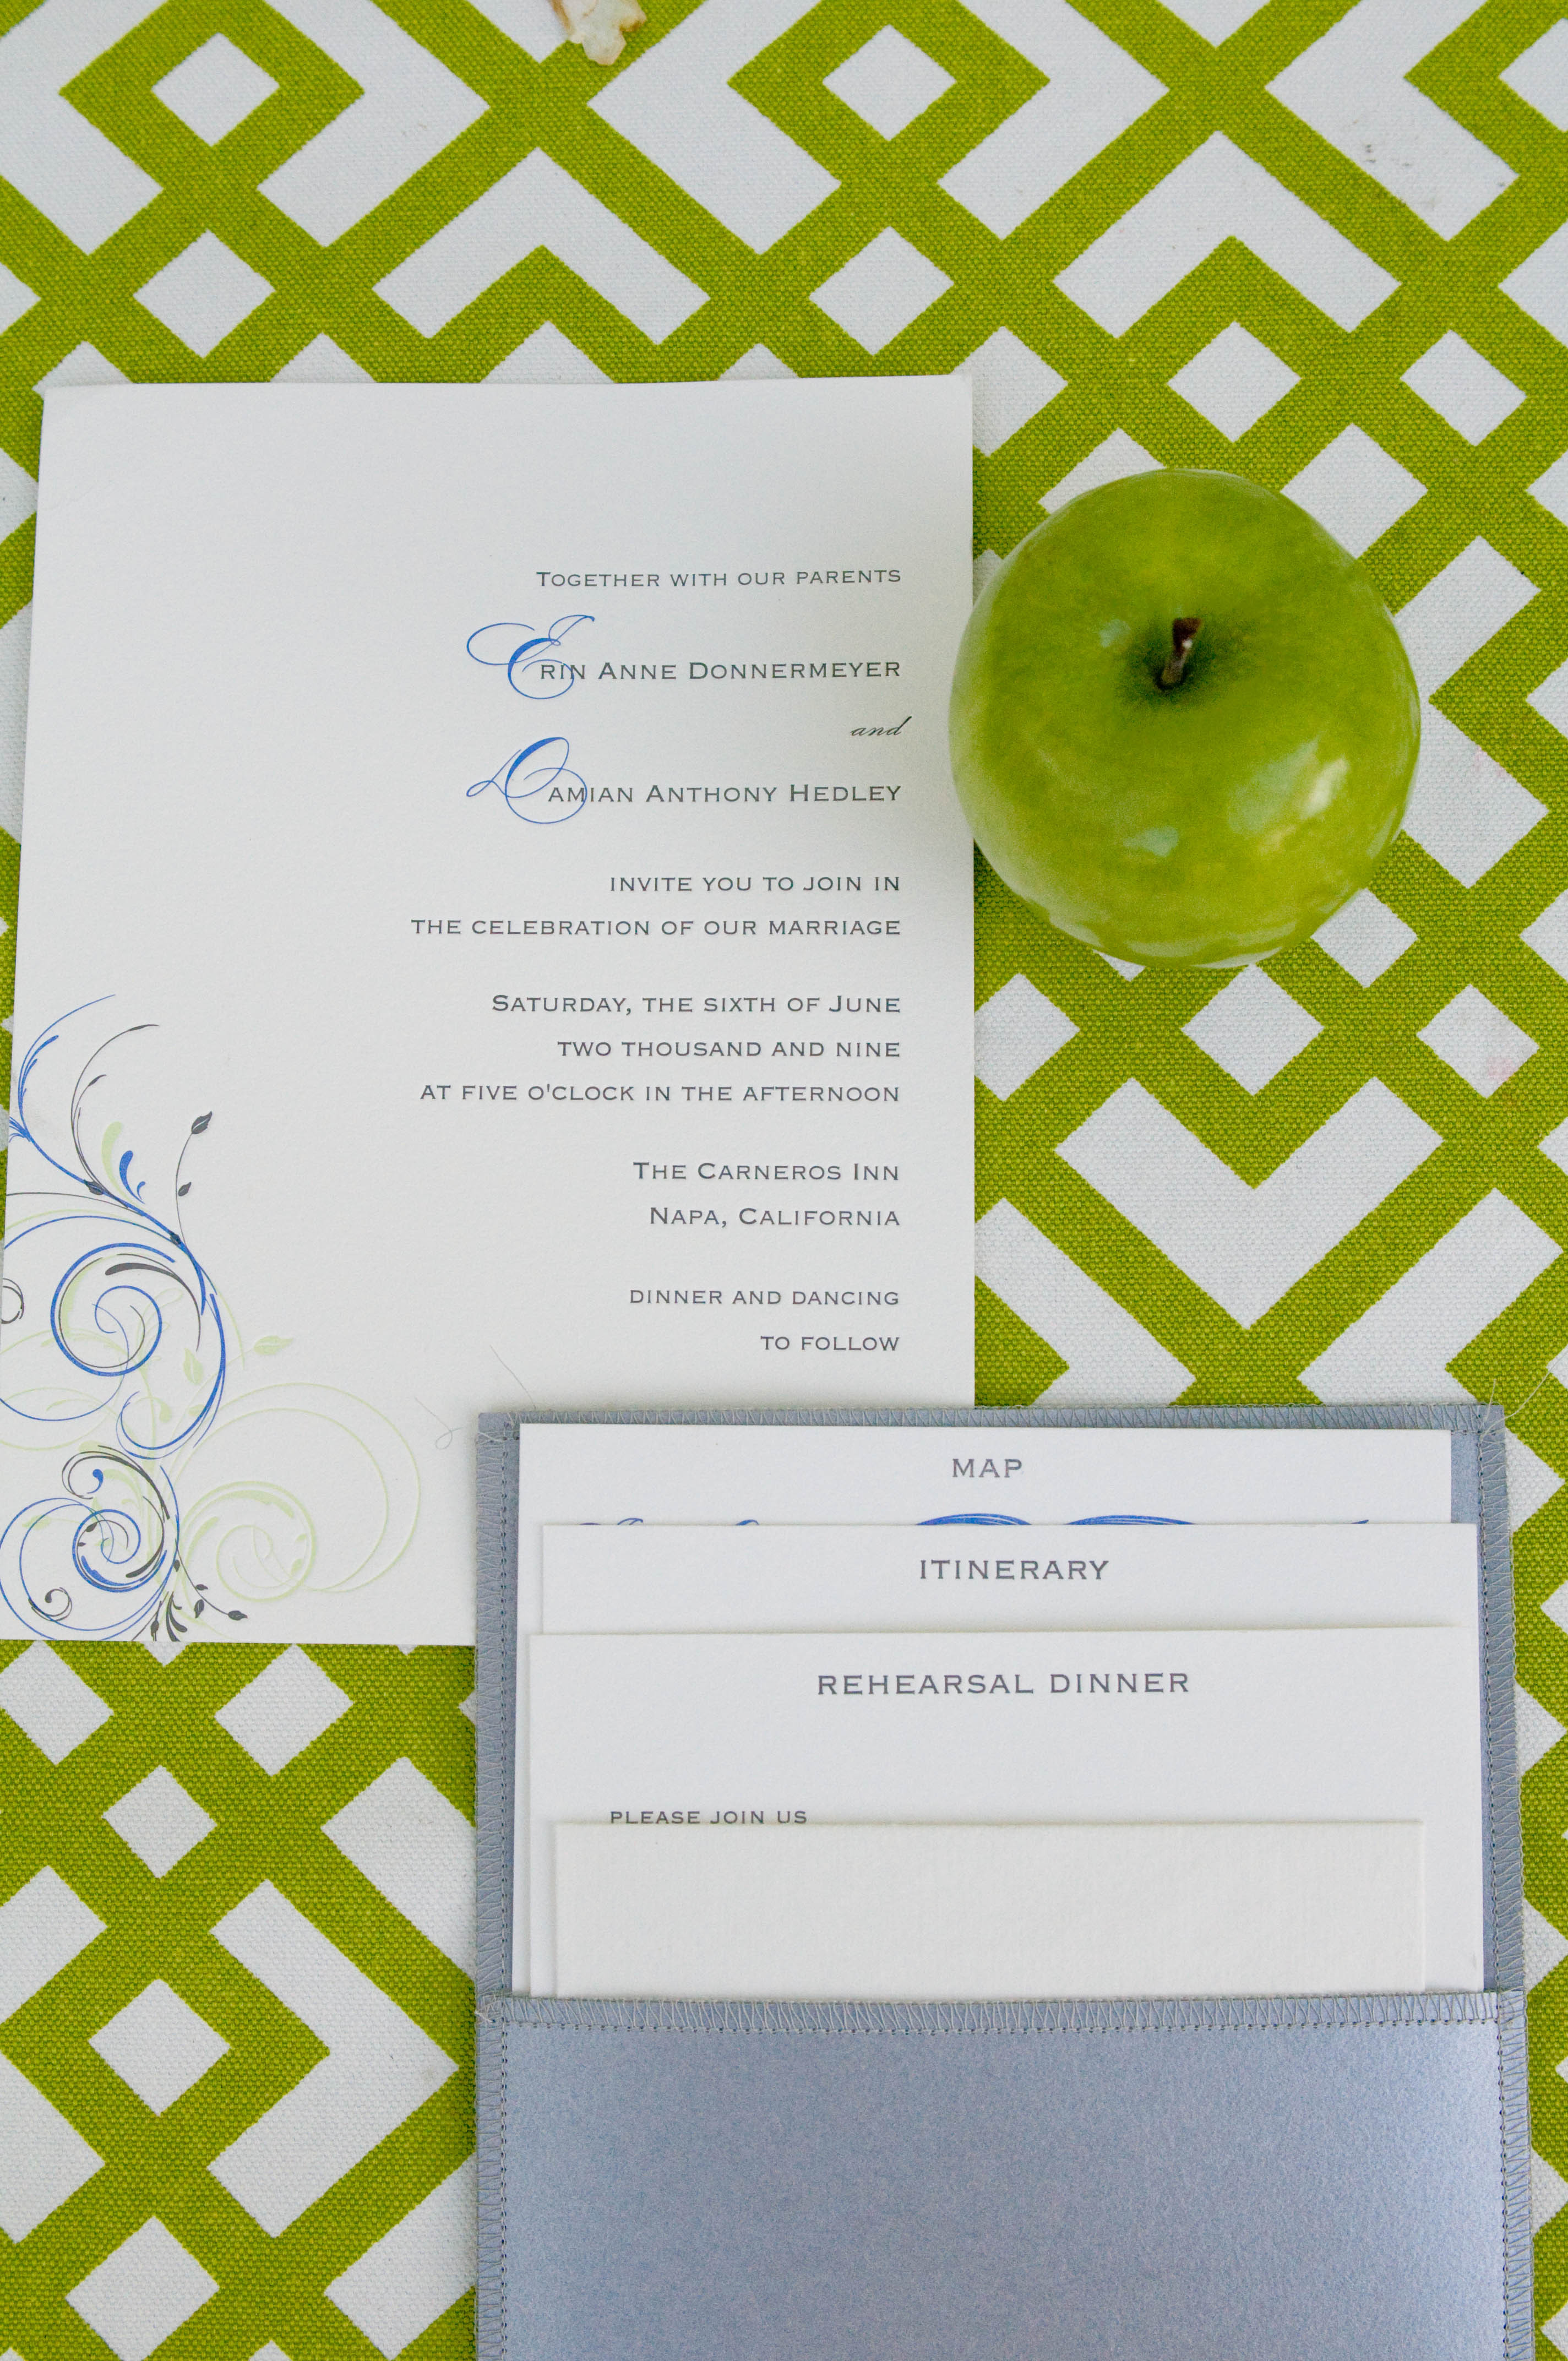 Stationery, green, Invitations, Angie silvy photography